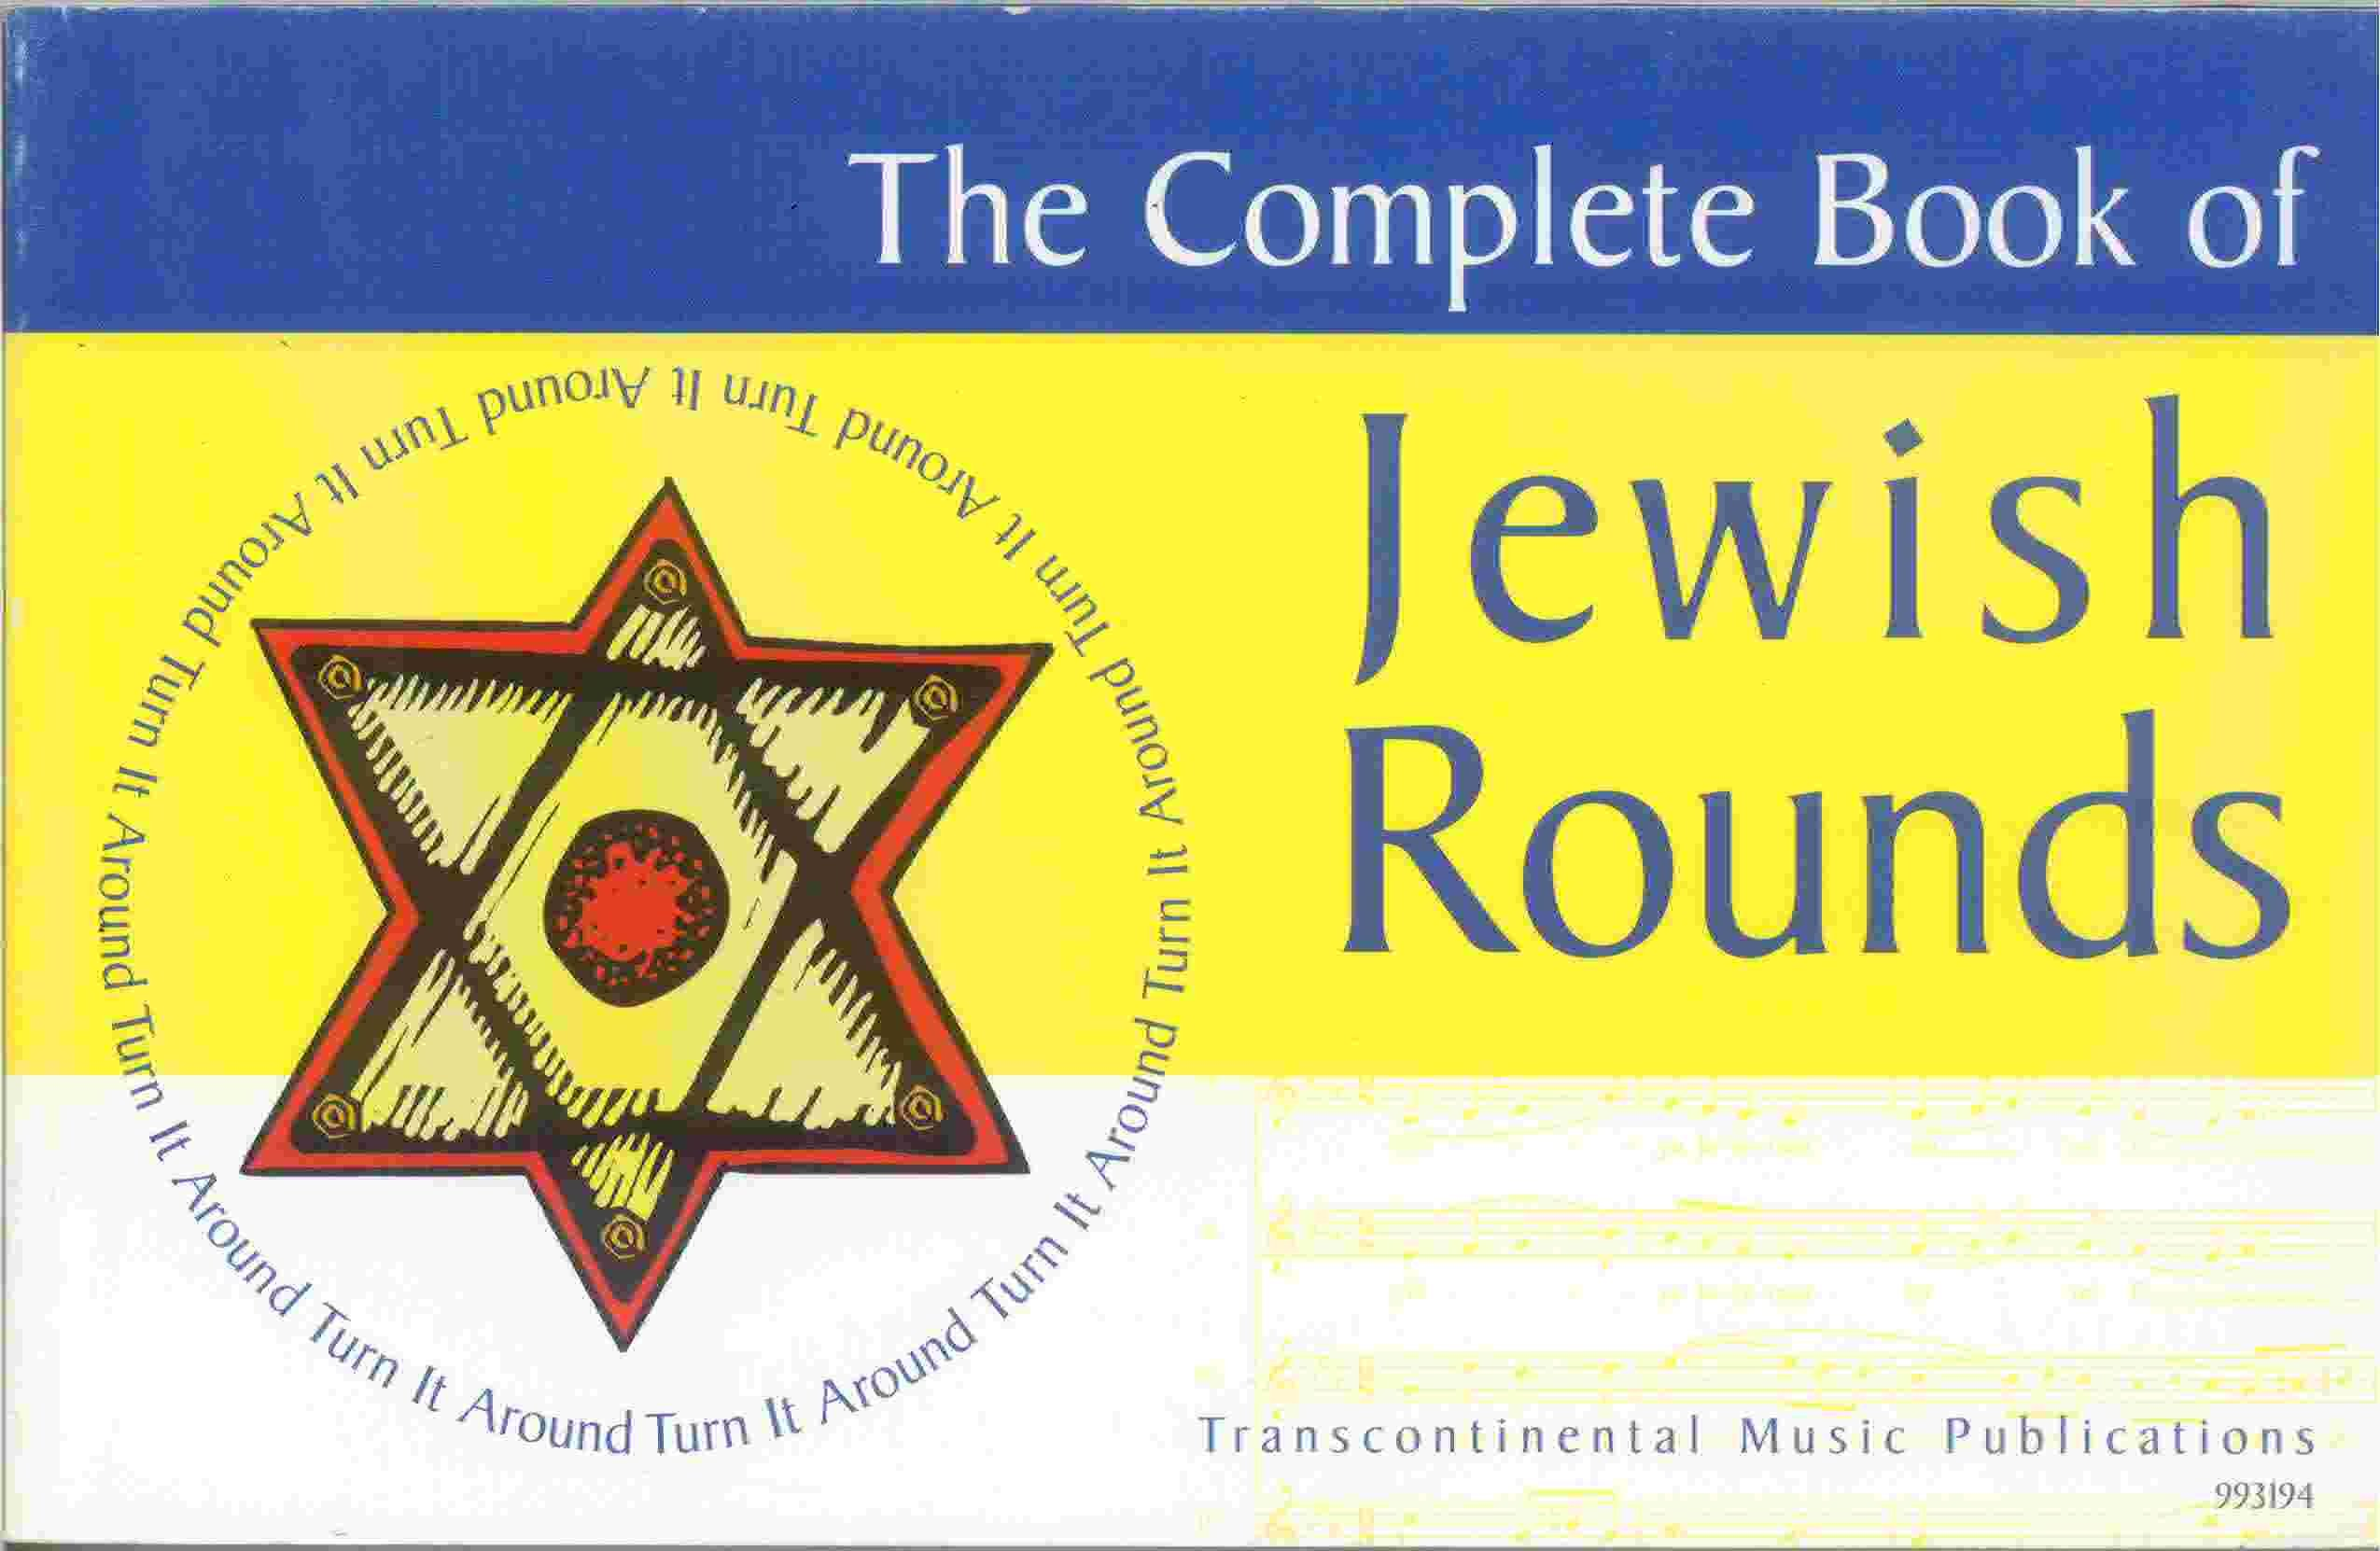 The Complete Book of Jewish Rounds: (Turn It Around)